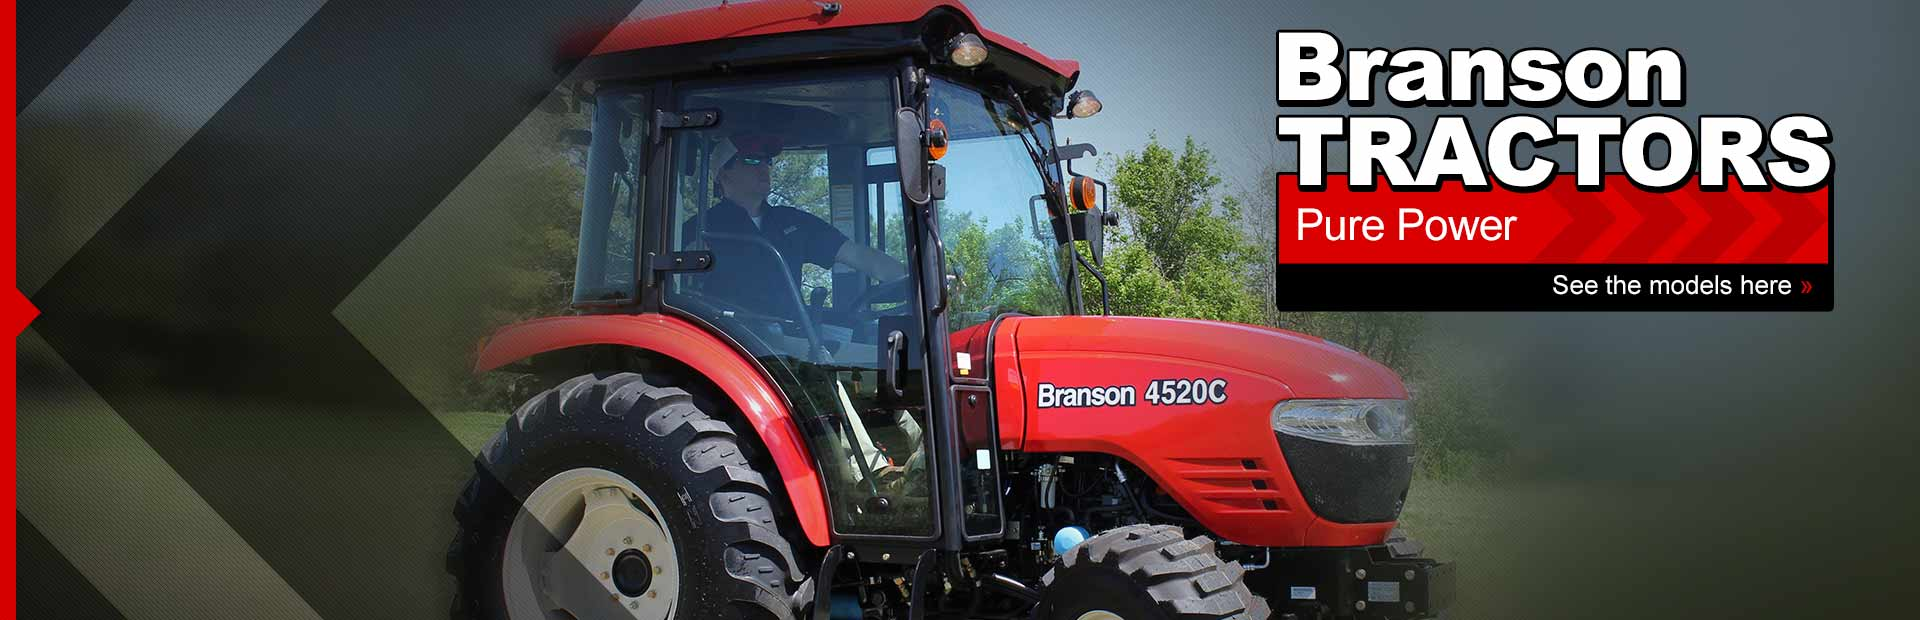 Branson Tractors: Click here to view the models.